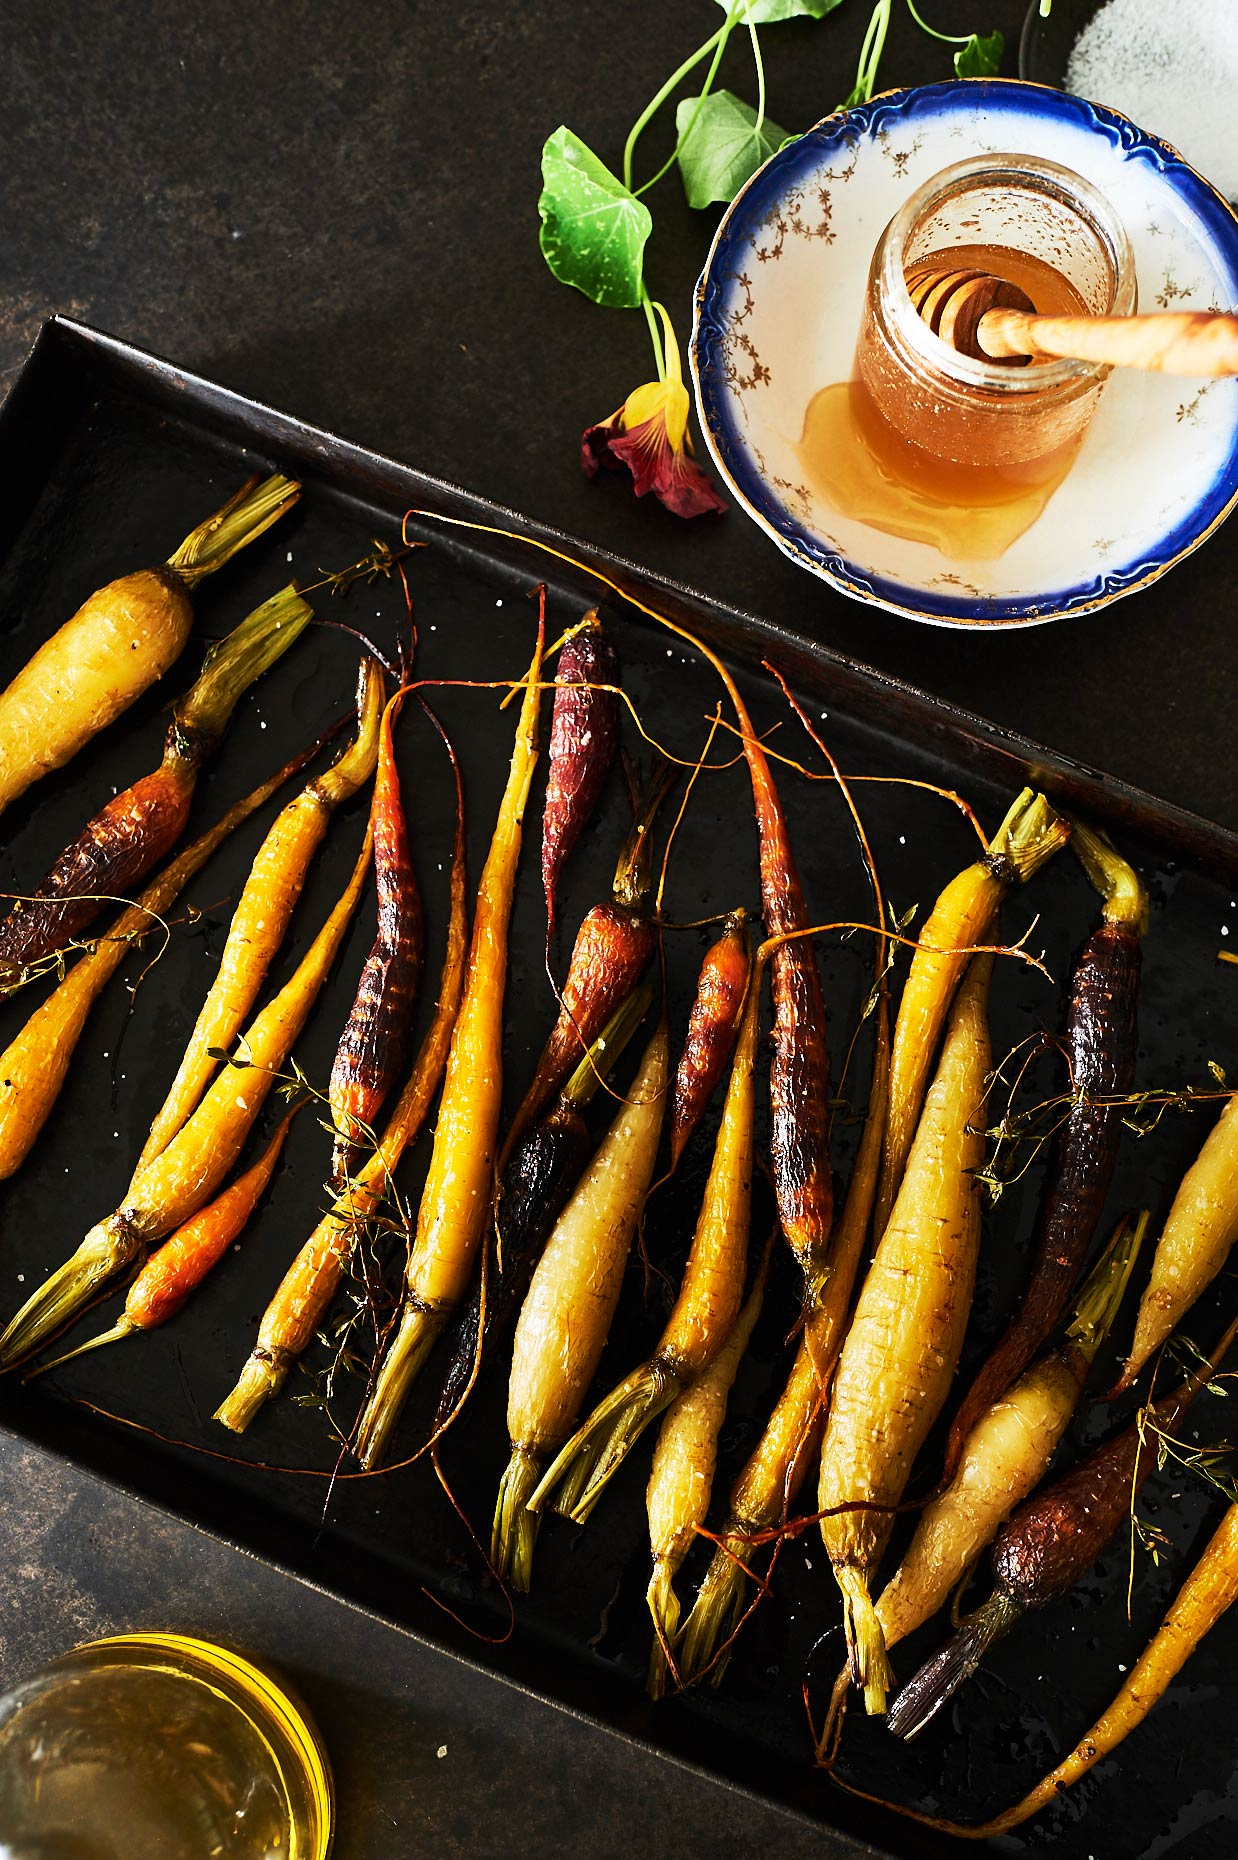 Roasted Carrots Jennifer May Food Photography NY Kitchen Photo Studio